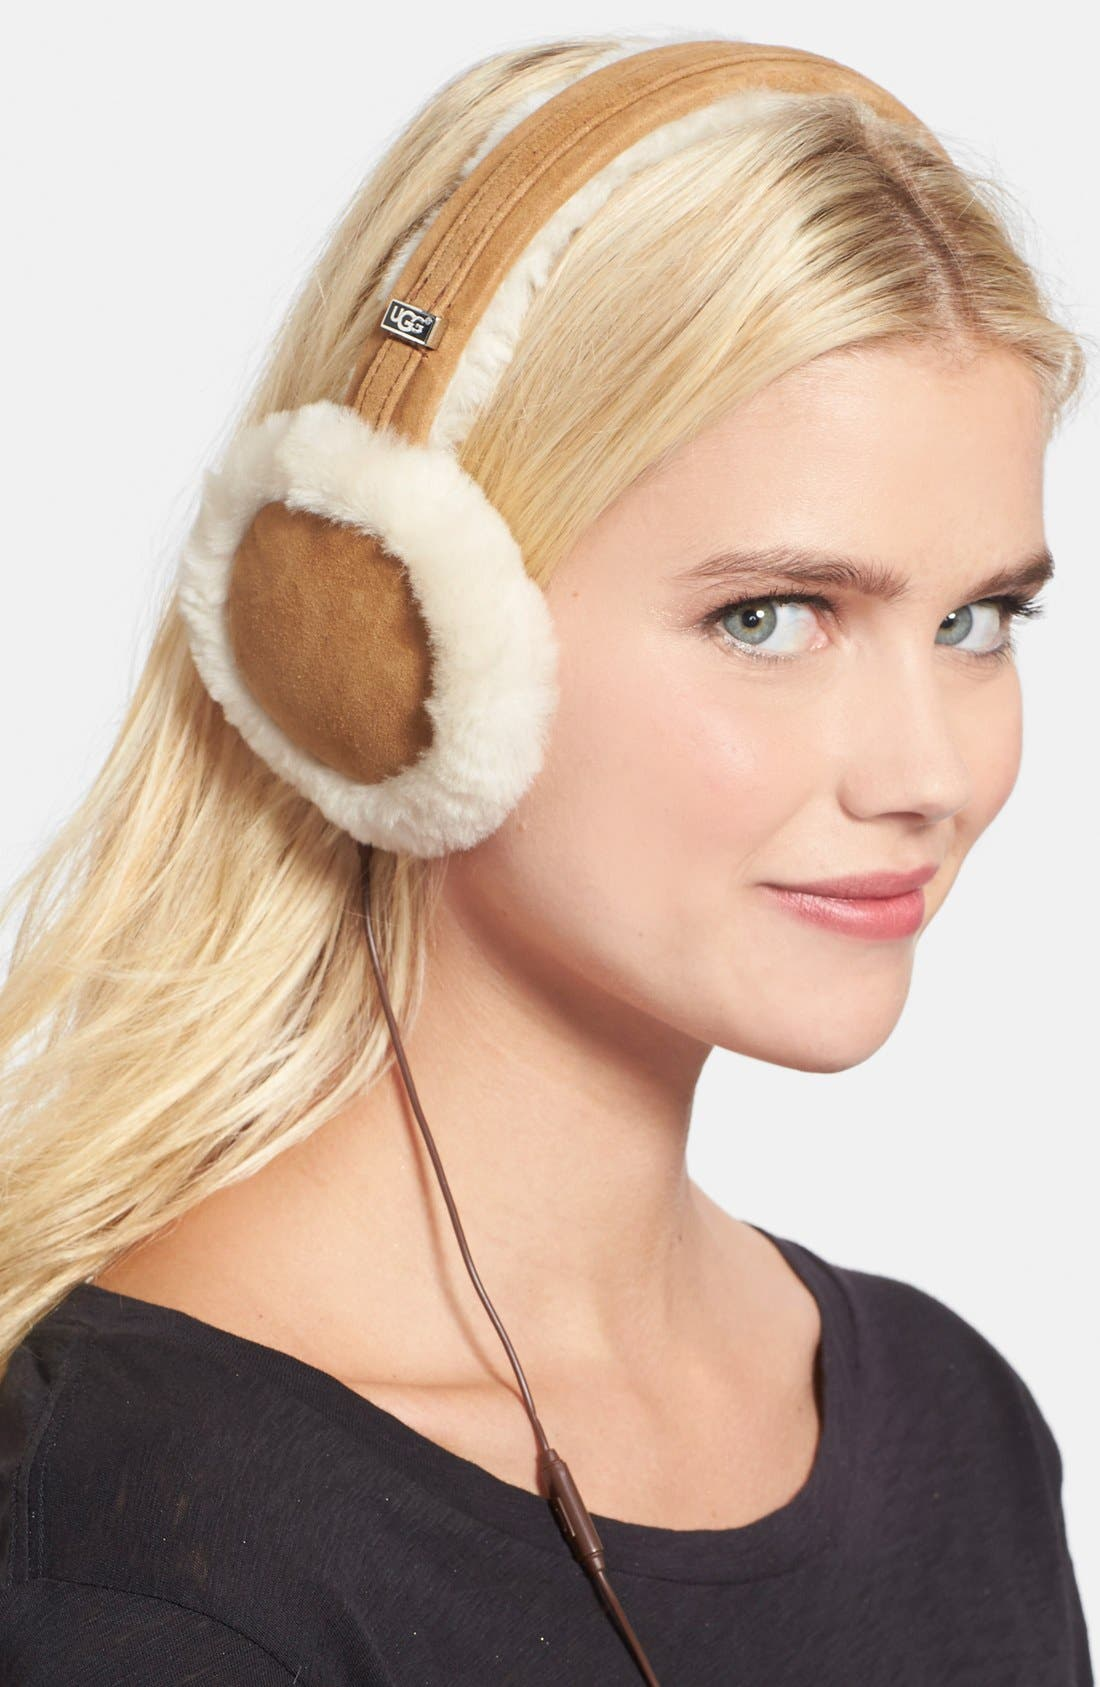 Alternate Image 1 Selected - UGG® Australia 'Classic' Genuine Shearling Headphone Earmuffs